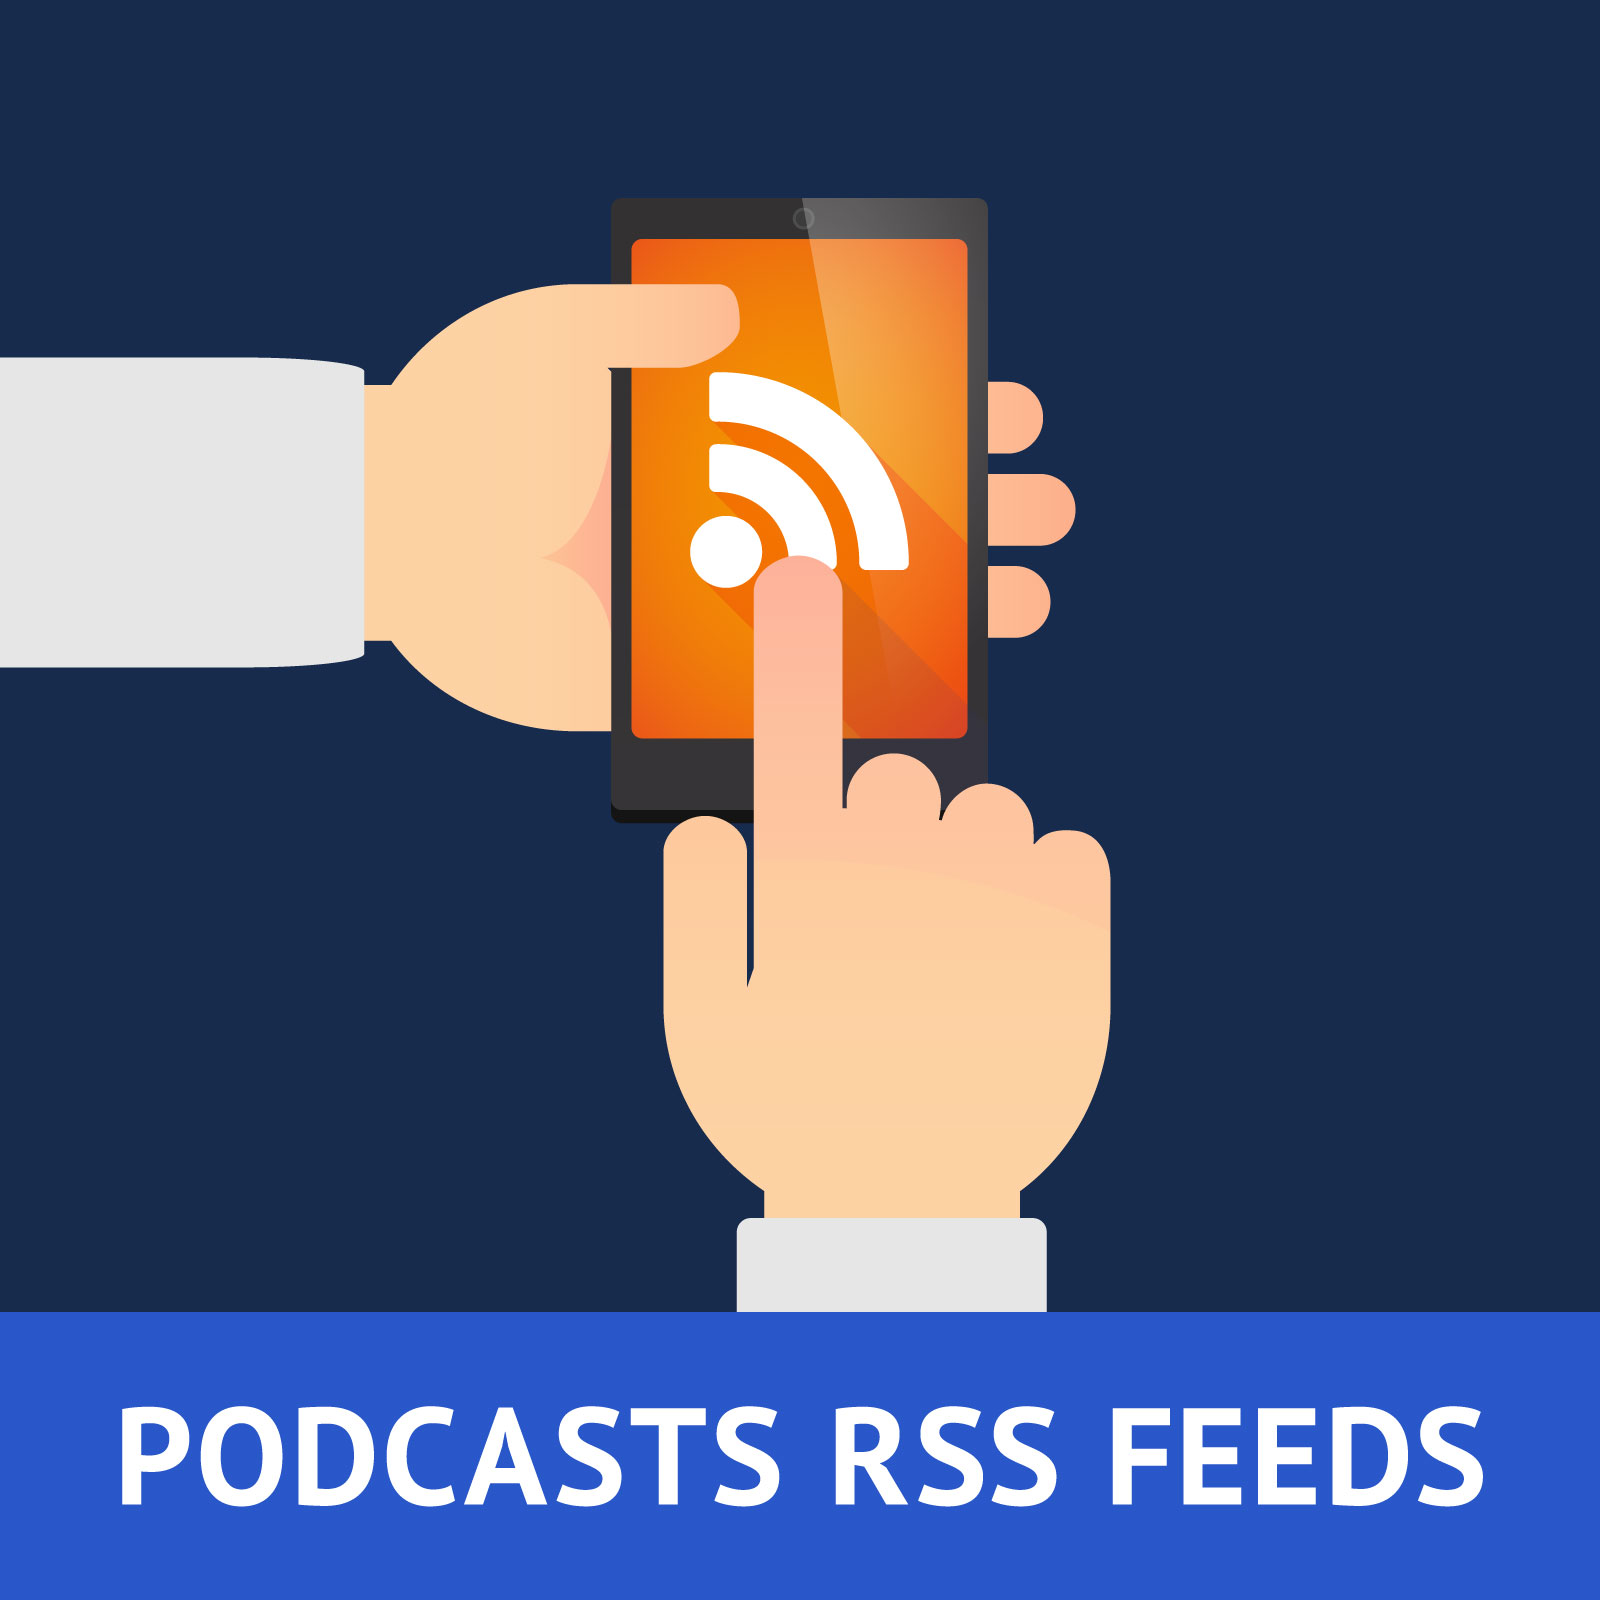 GAudio and Video Podcasts RSS Feeds